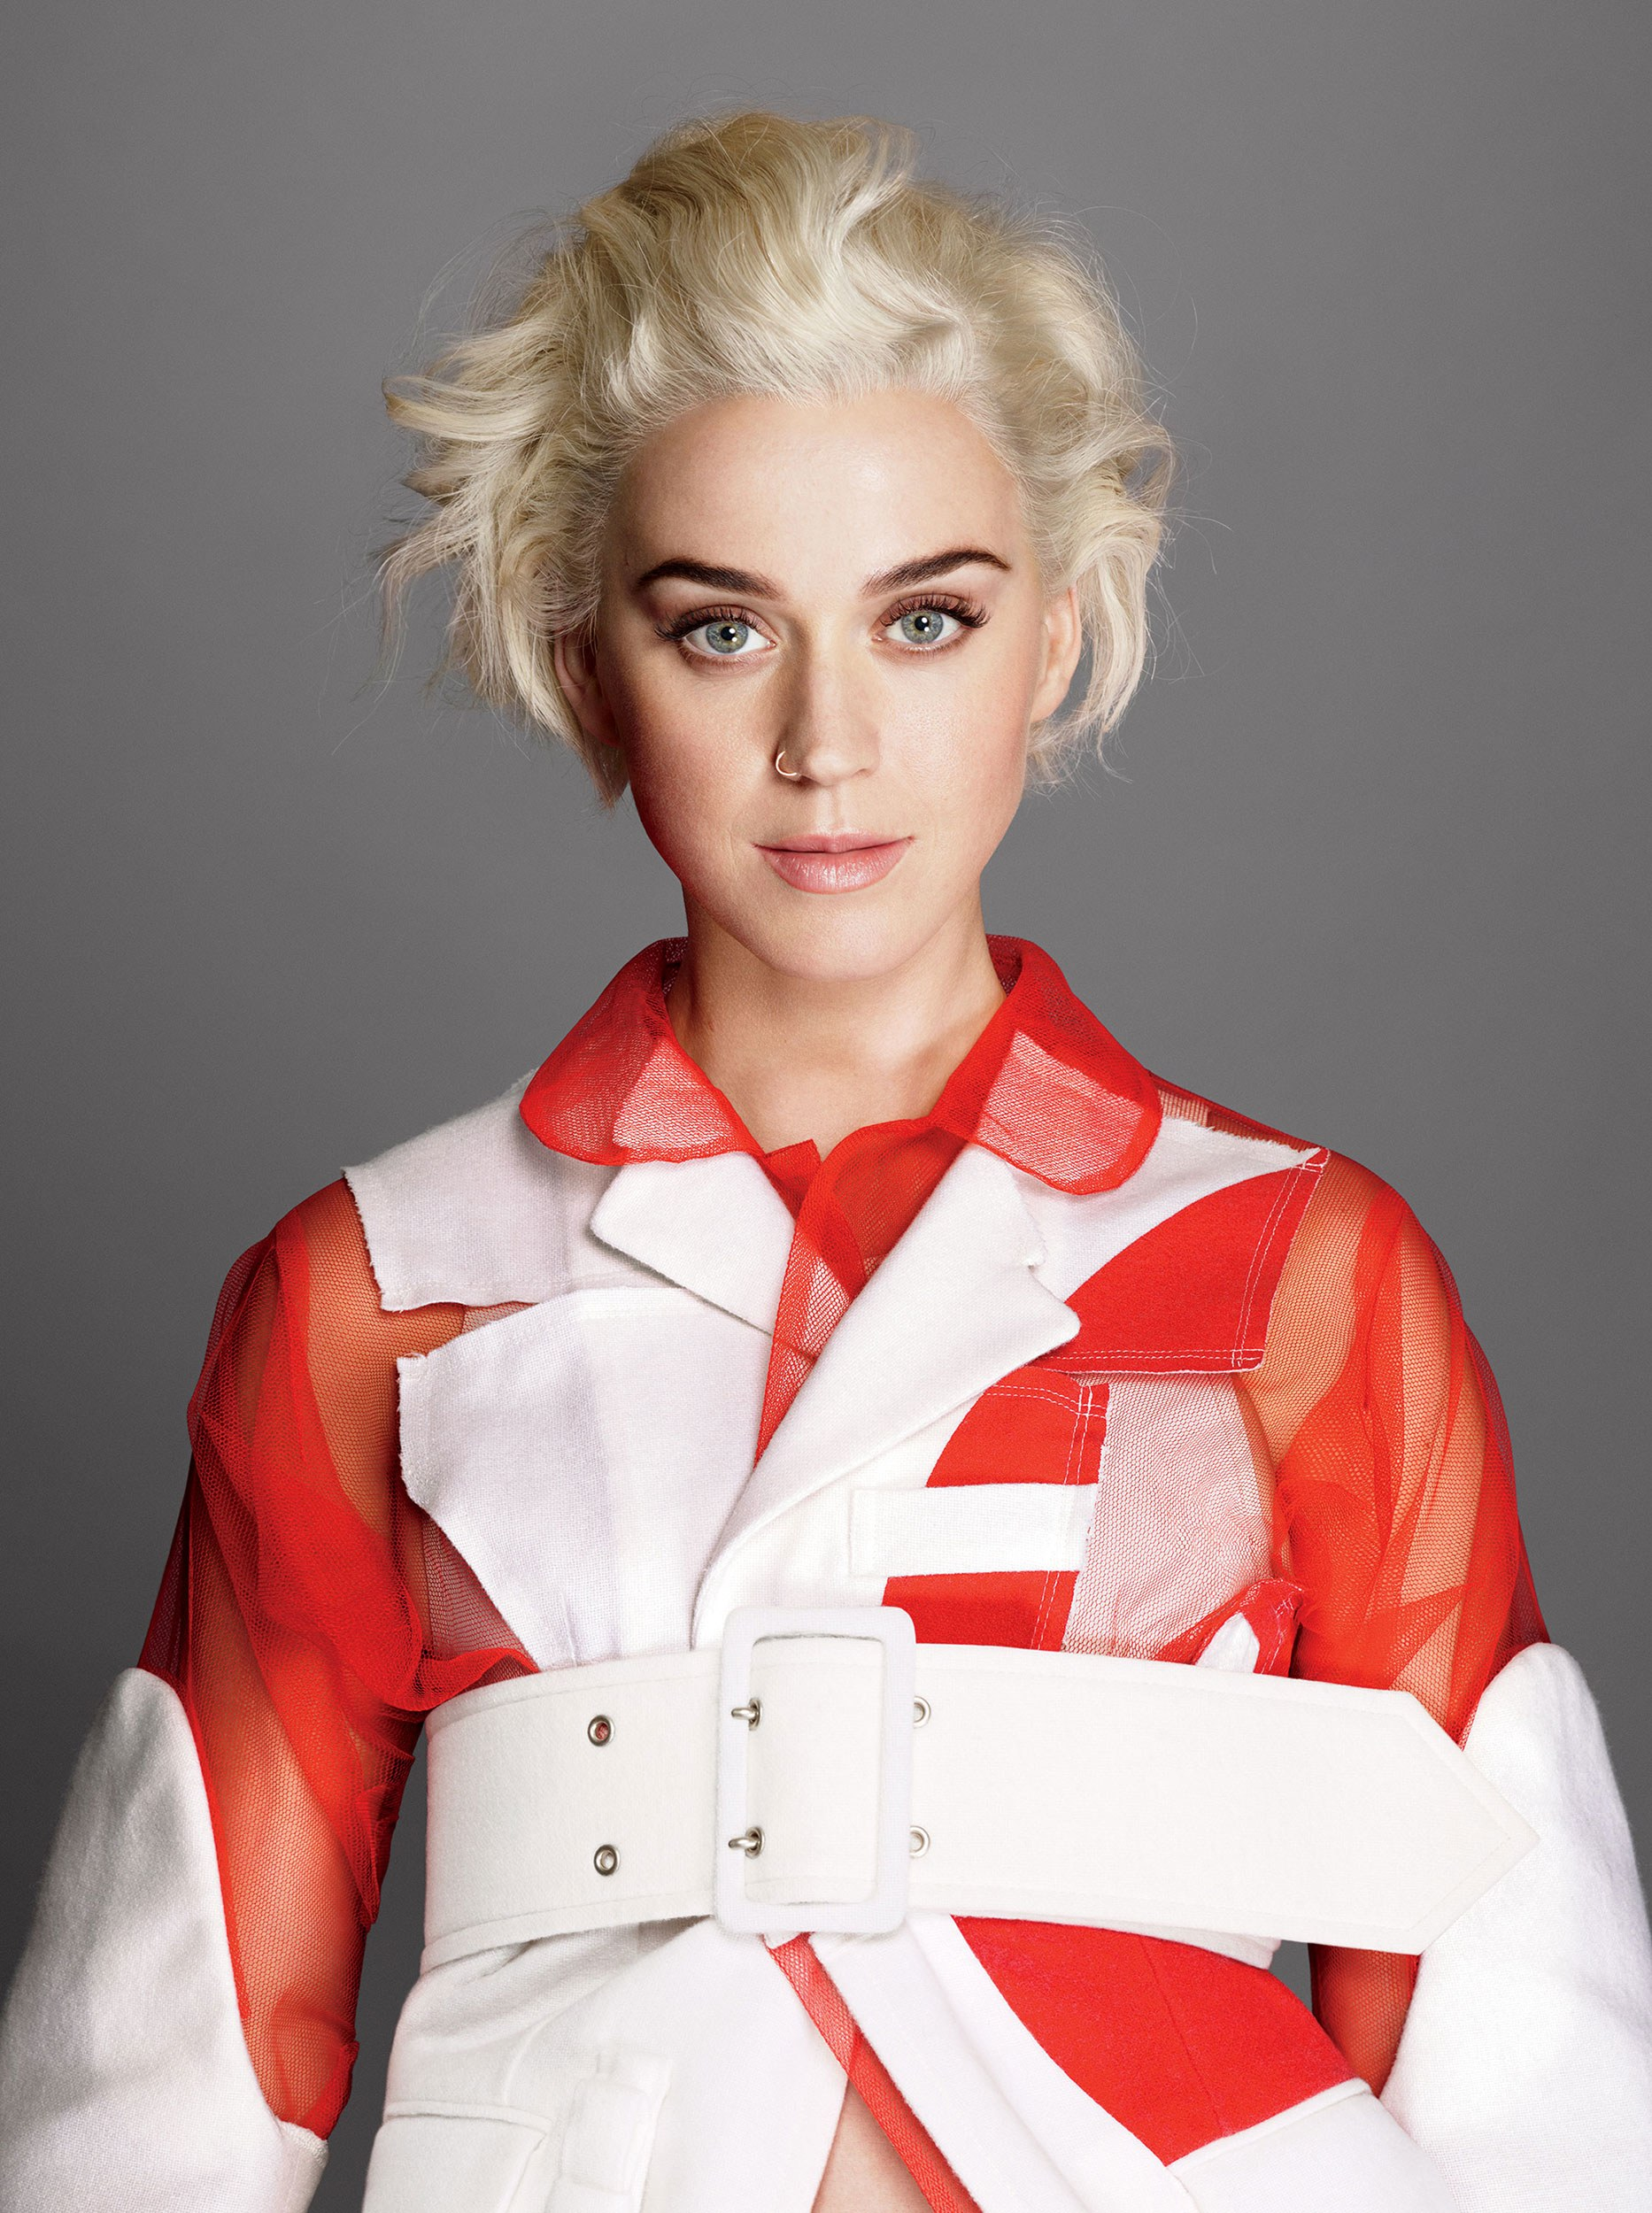 American Idol Katy Perry To Pocket 15 Million That